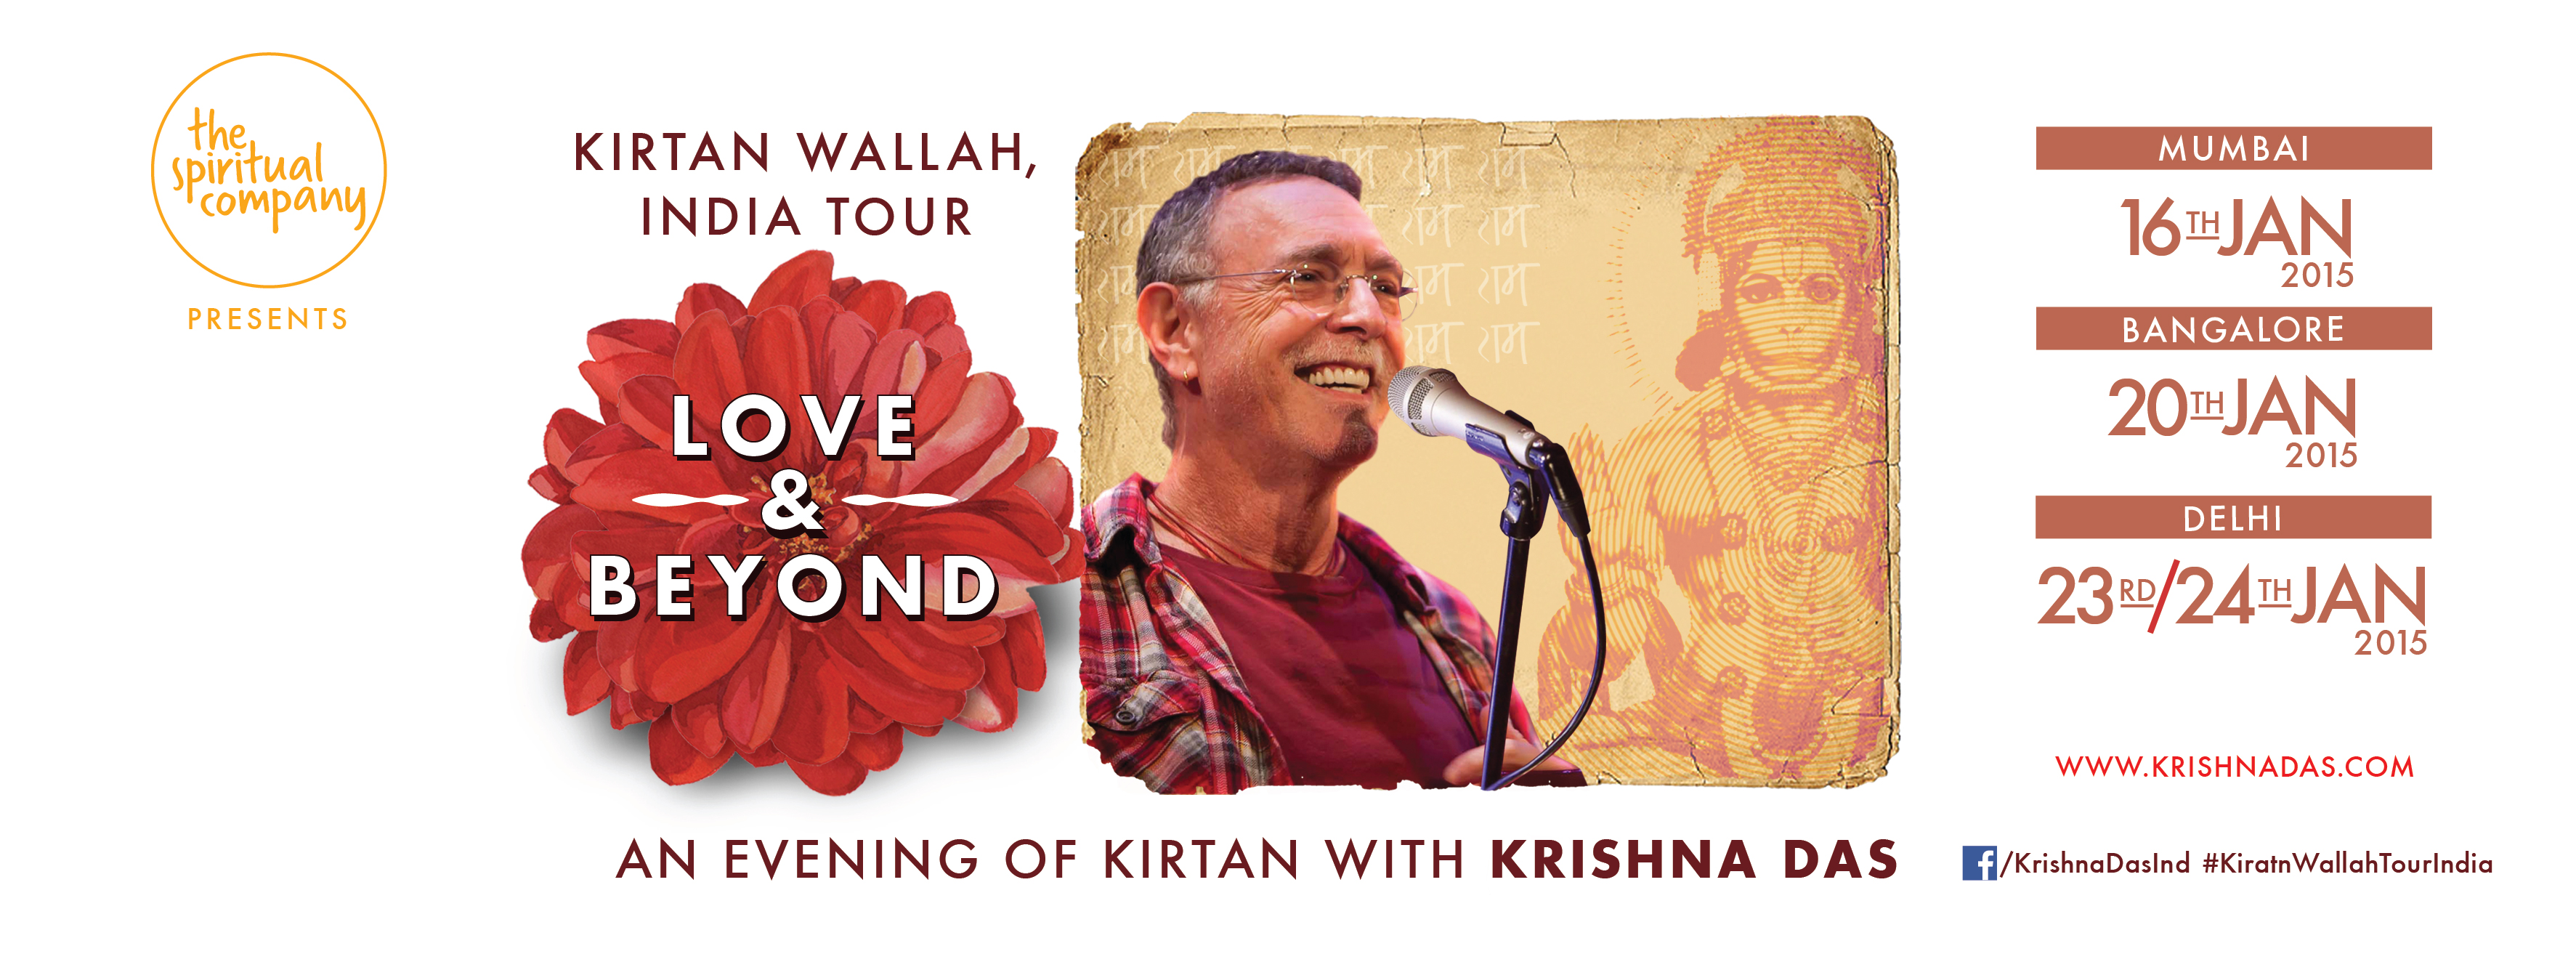 Book Online Tickets for Kirtan Wallah India Tour , Bengaluru. About the artist- Layering traditional Hindu kirtan with instantly accessible melodies and modern instrumentation, Krishna Das has been called yoga\\\'s \\\'\\\'rock star\\\'\\\'. With a remarkably soulful voice that touches the deepest chord in eve